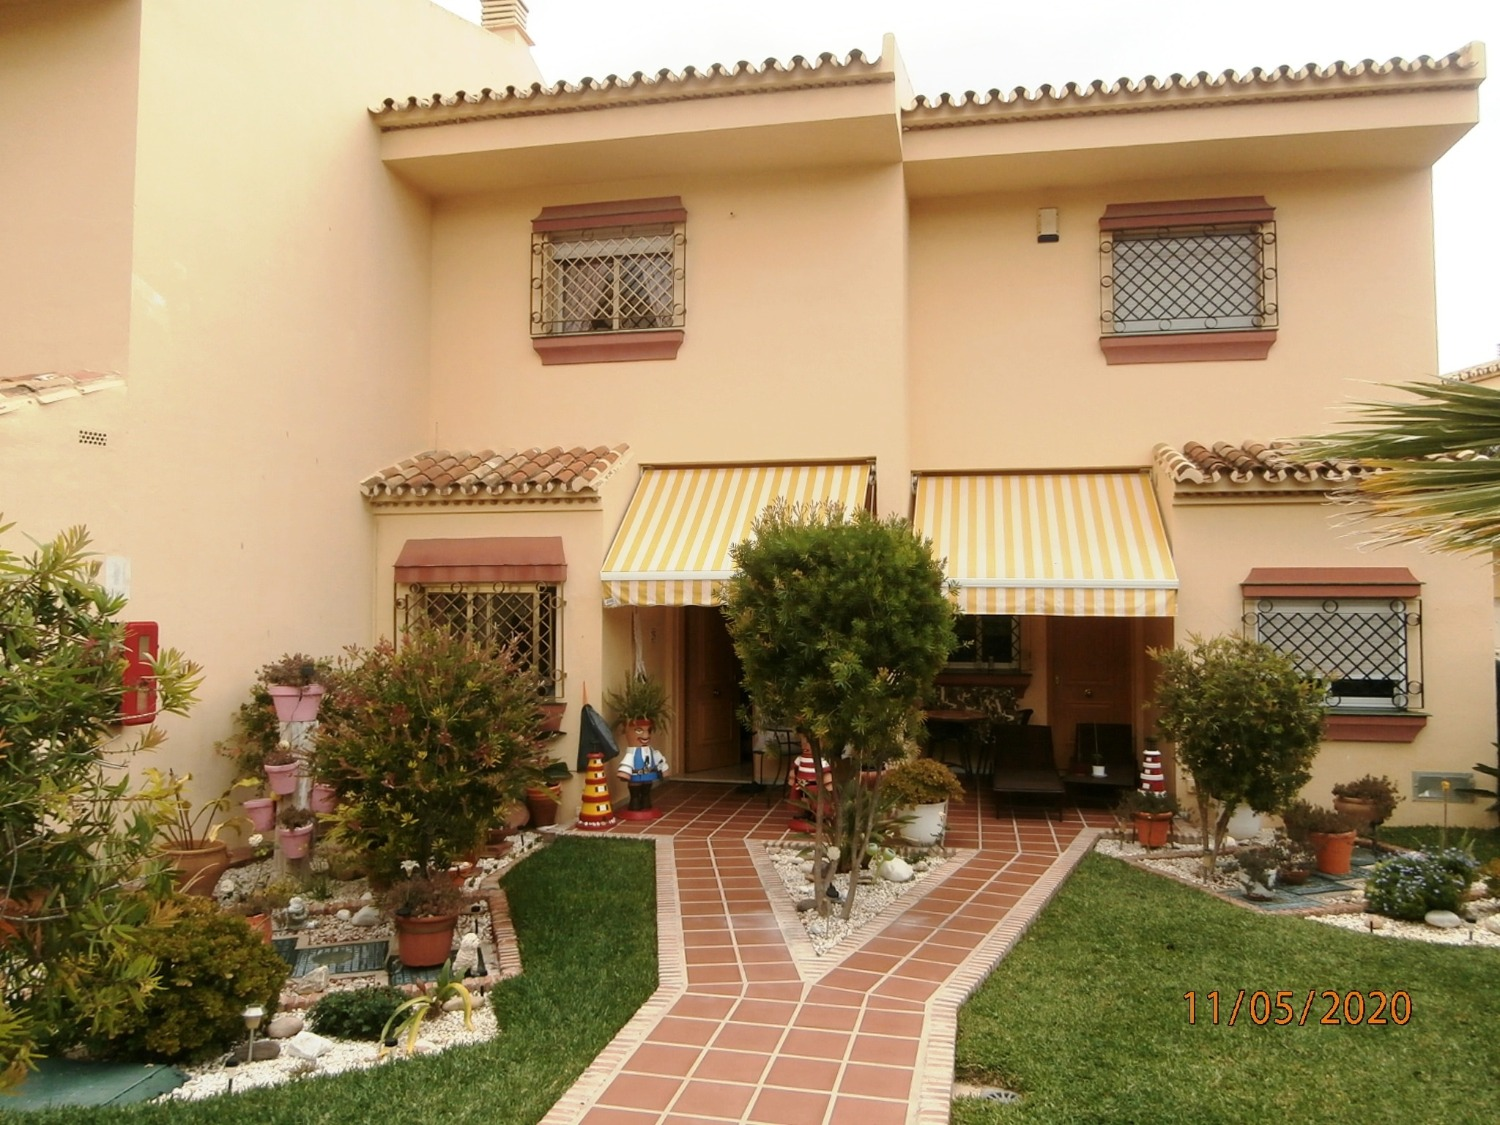 House for sale in Benalmadena